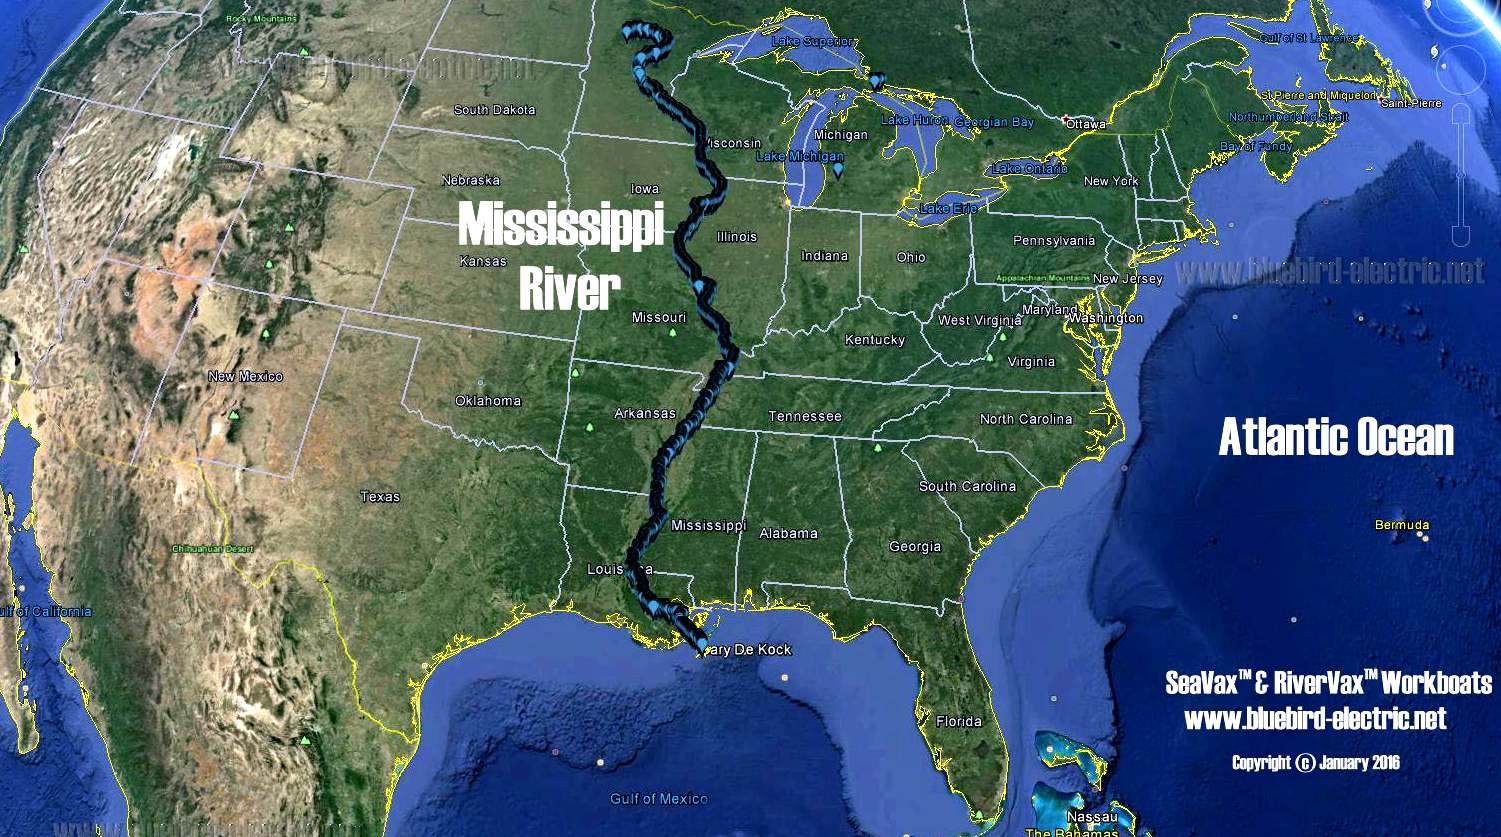 THE MISSISSIPPI RIVER - Us map showing mississippi river